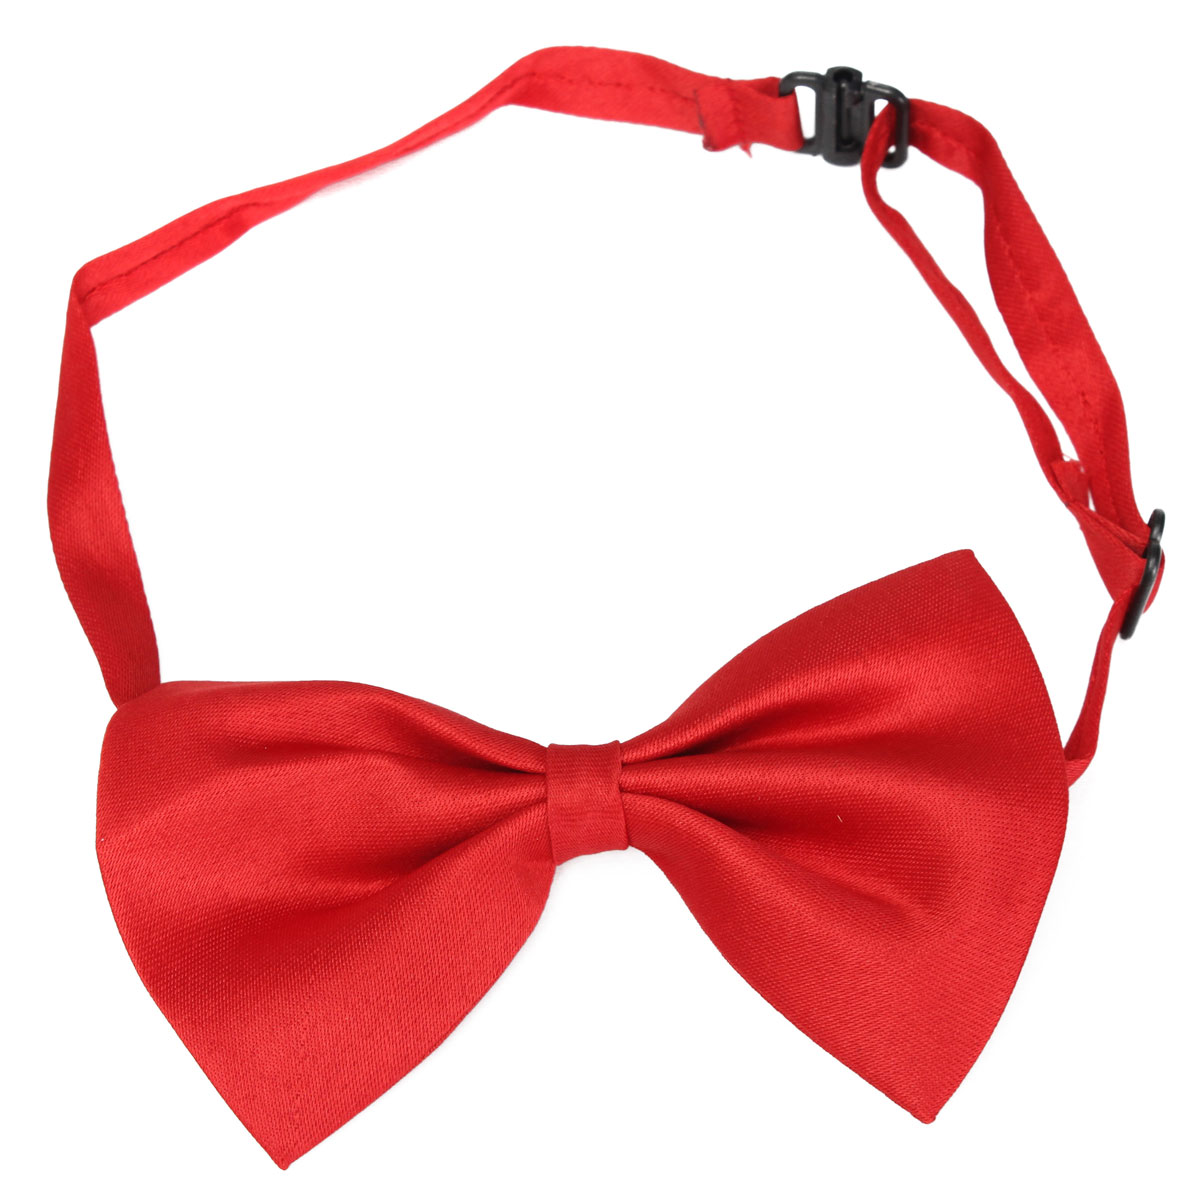 Kids Child Adjustable Pre Tied Satin Bow Tie Bowtie Wedding Party Dress Up